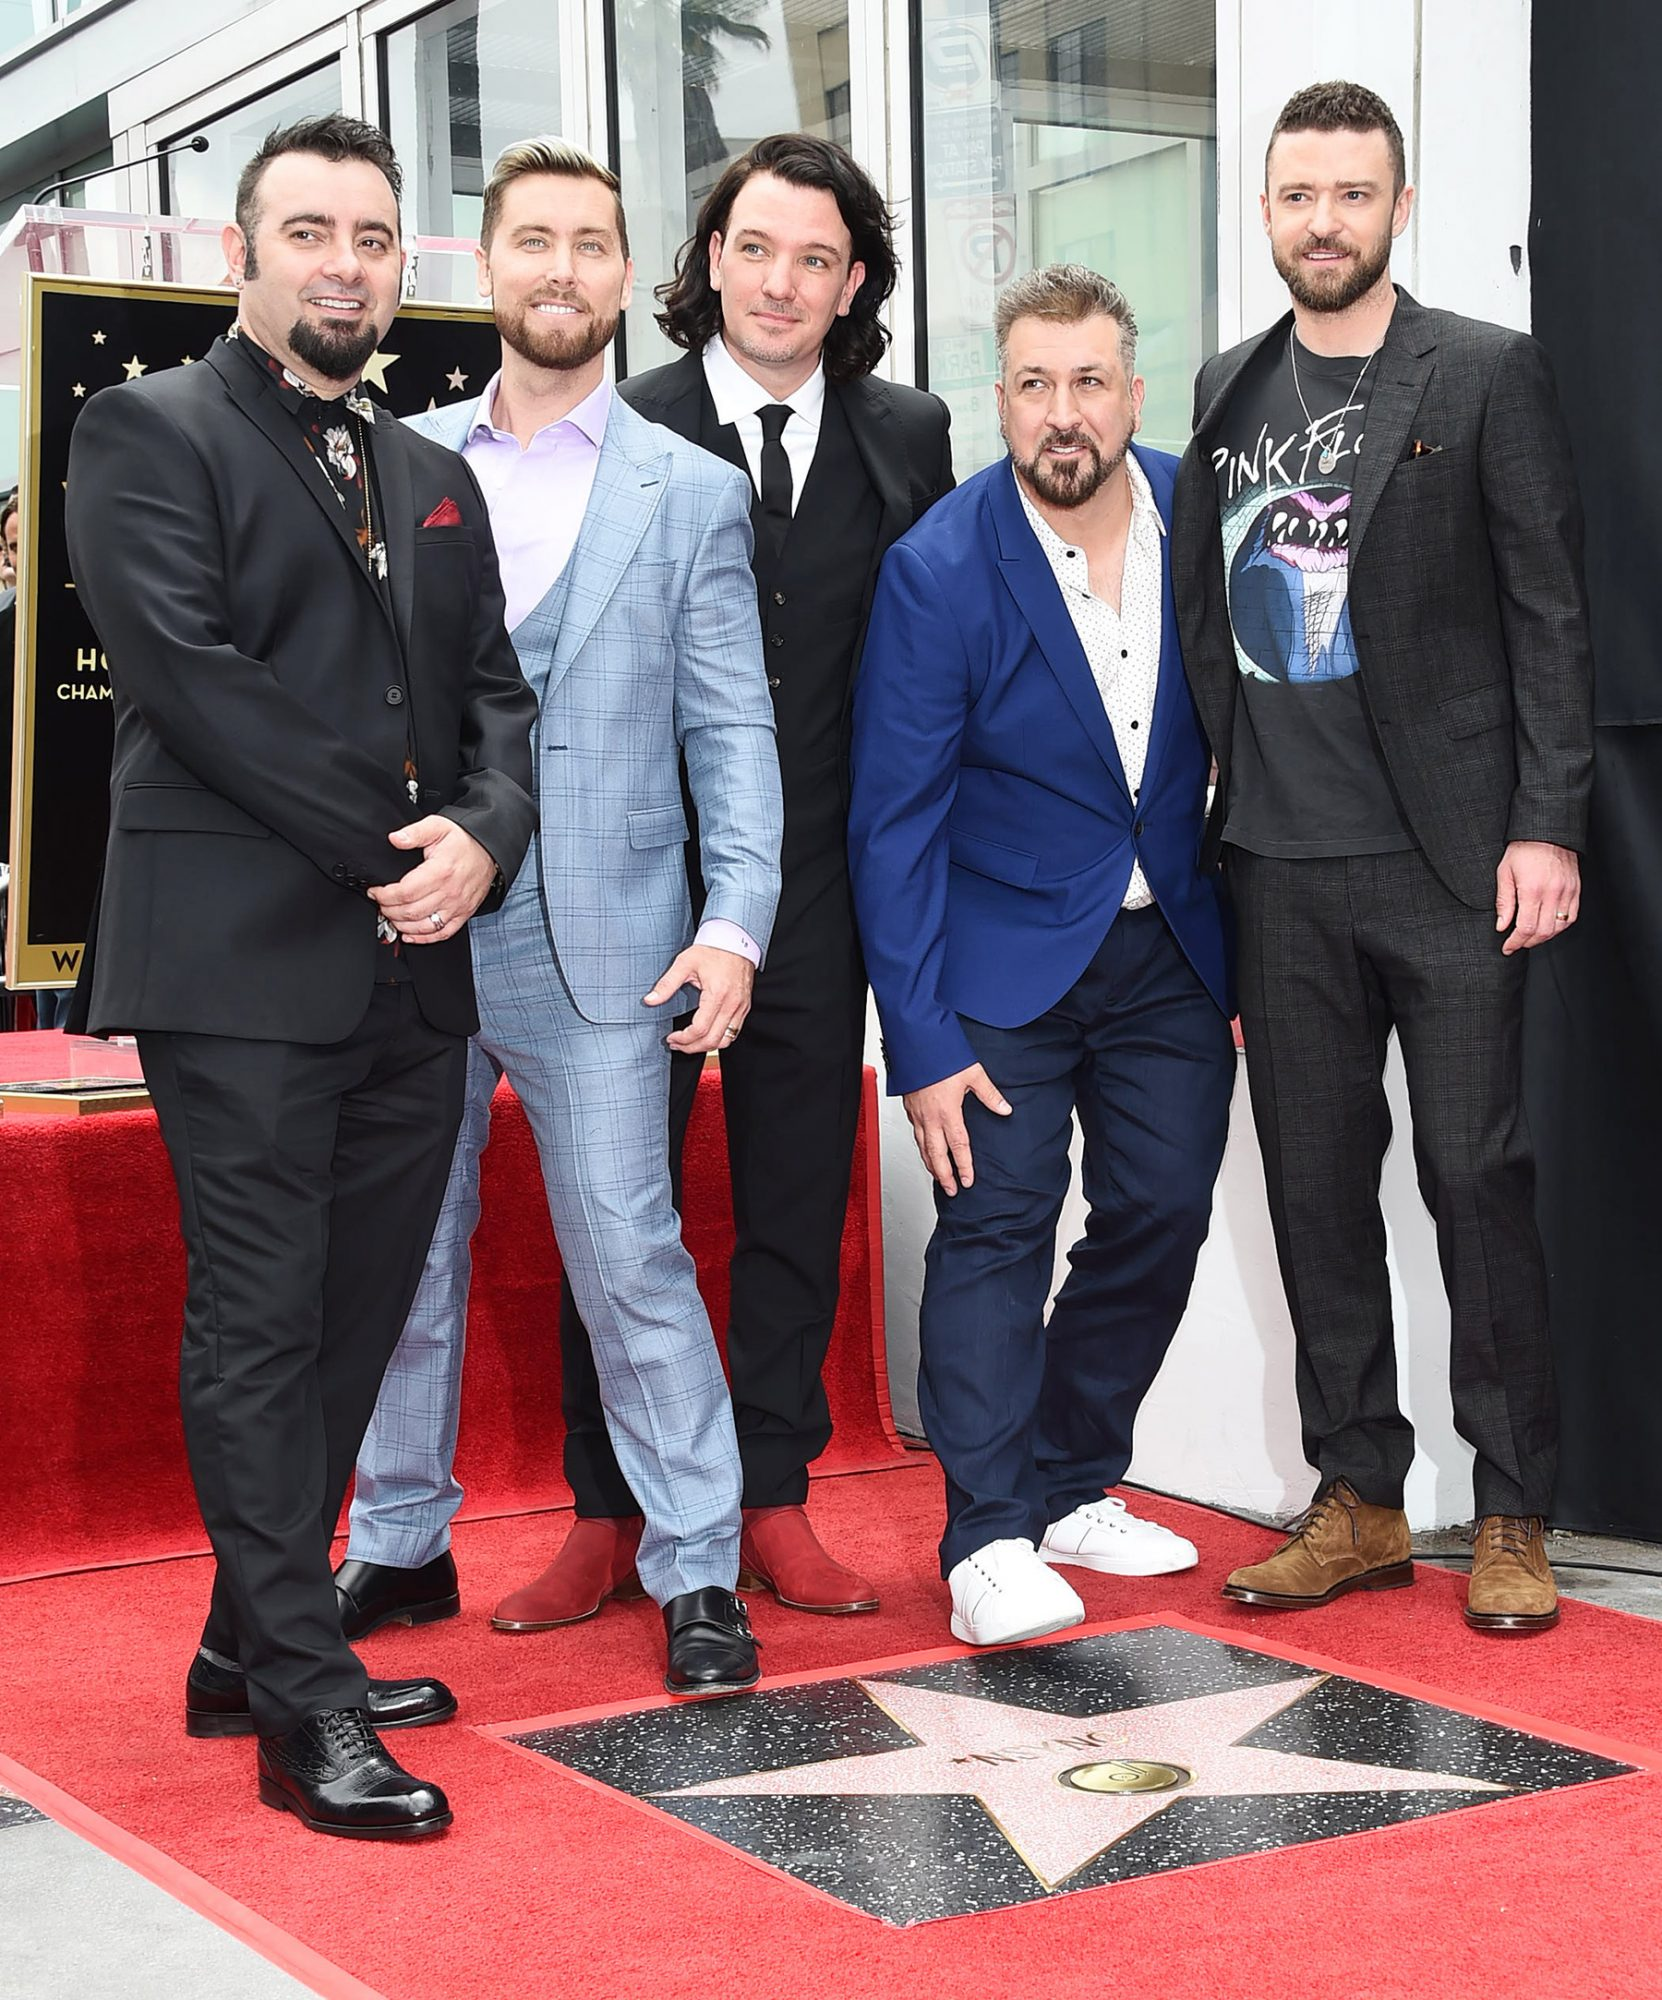 NSYNC Honored With Star on Hollywood Walk of Fame